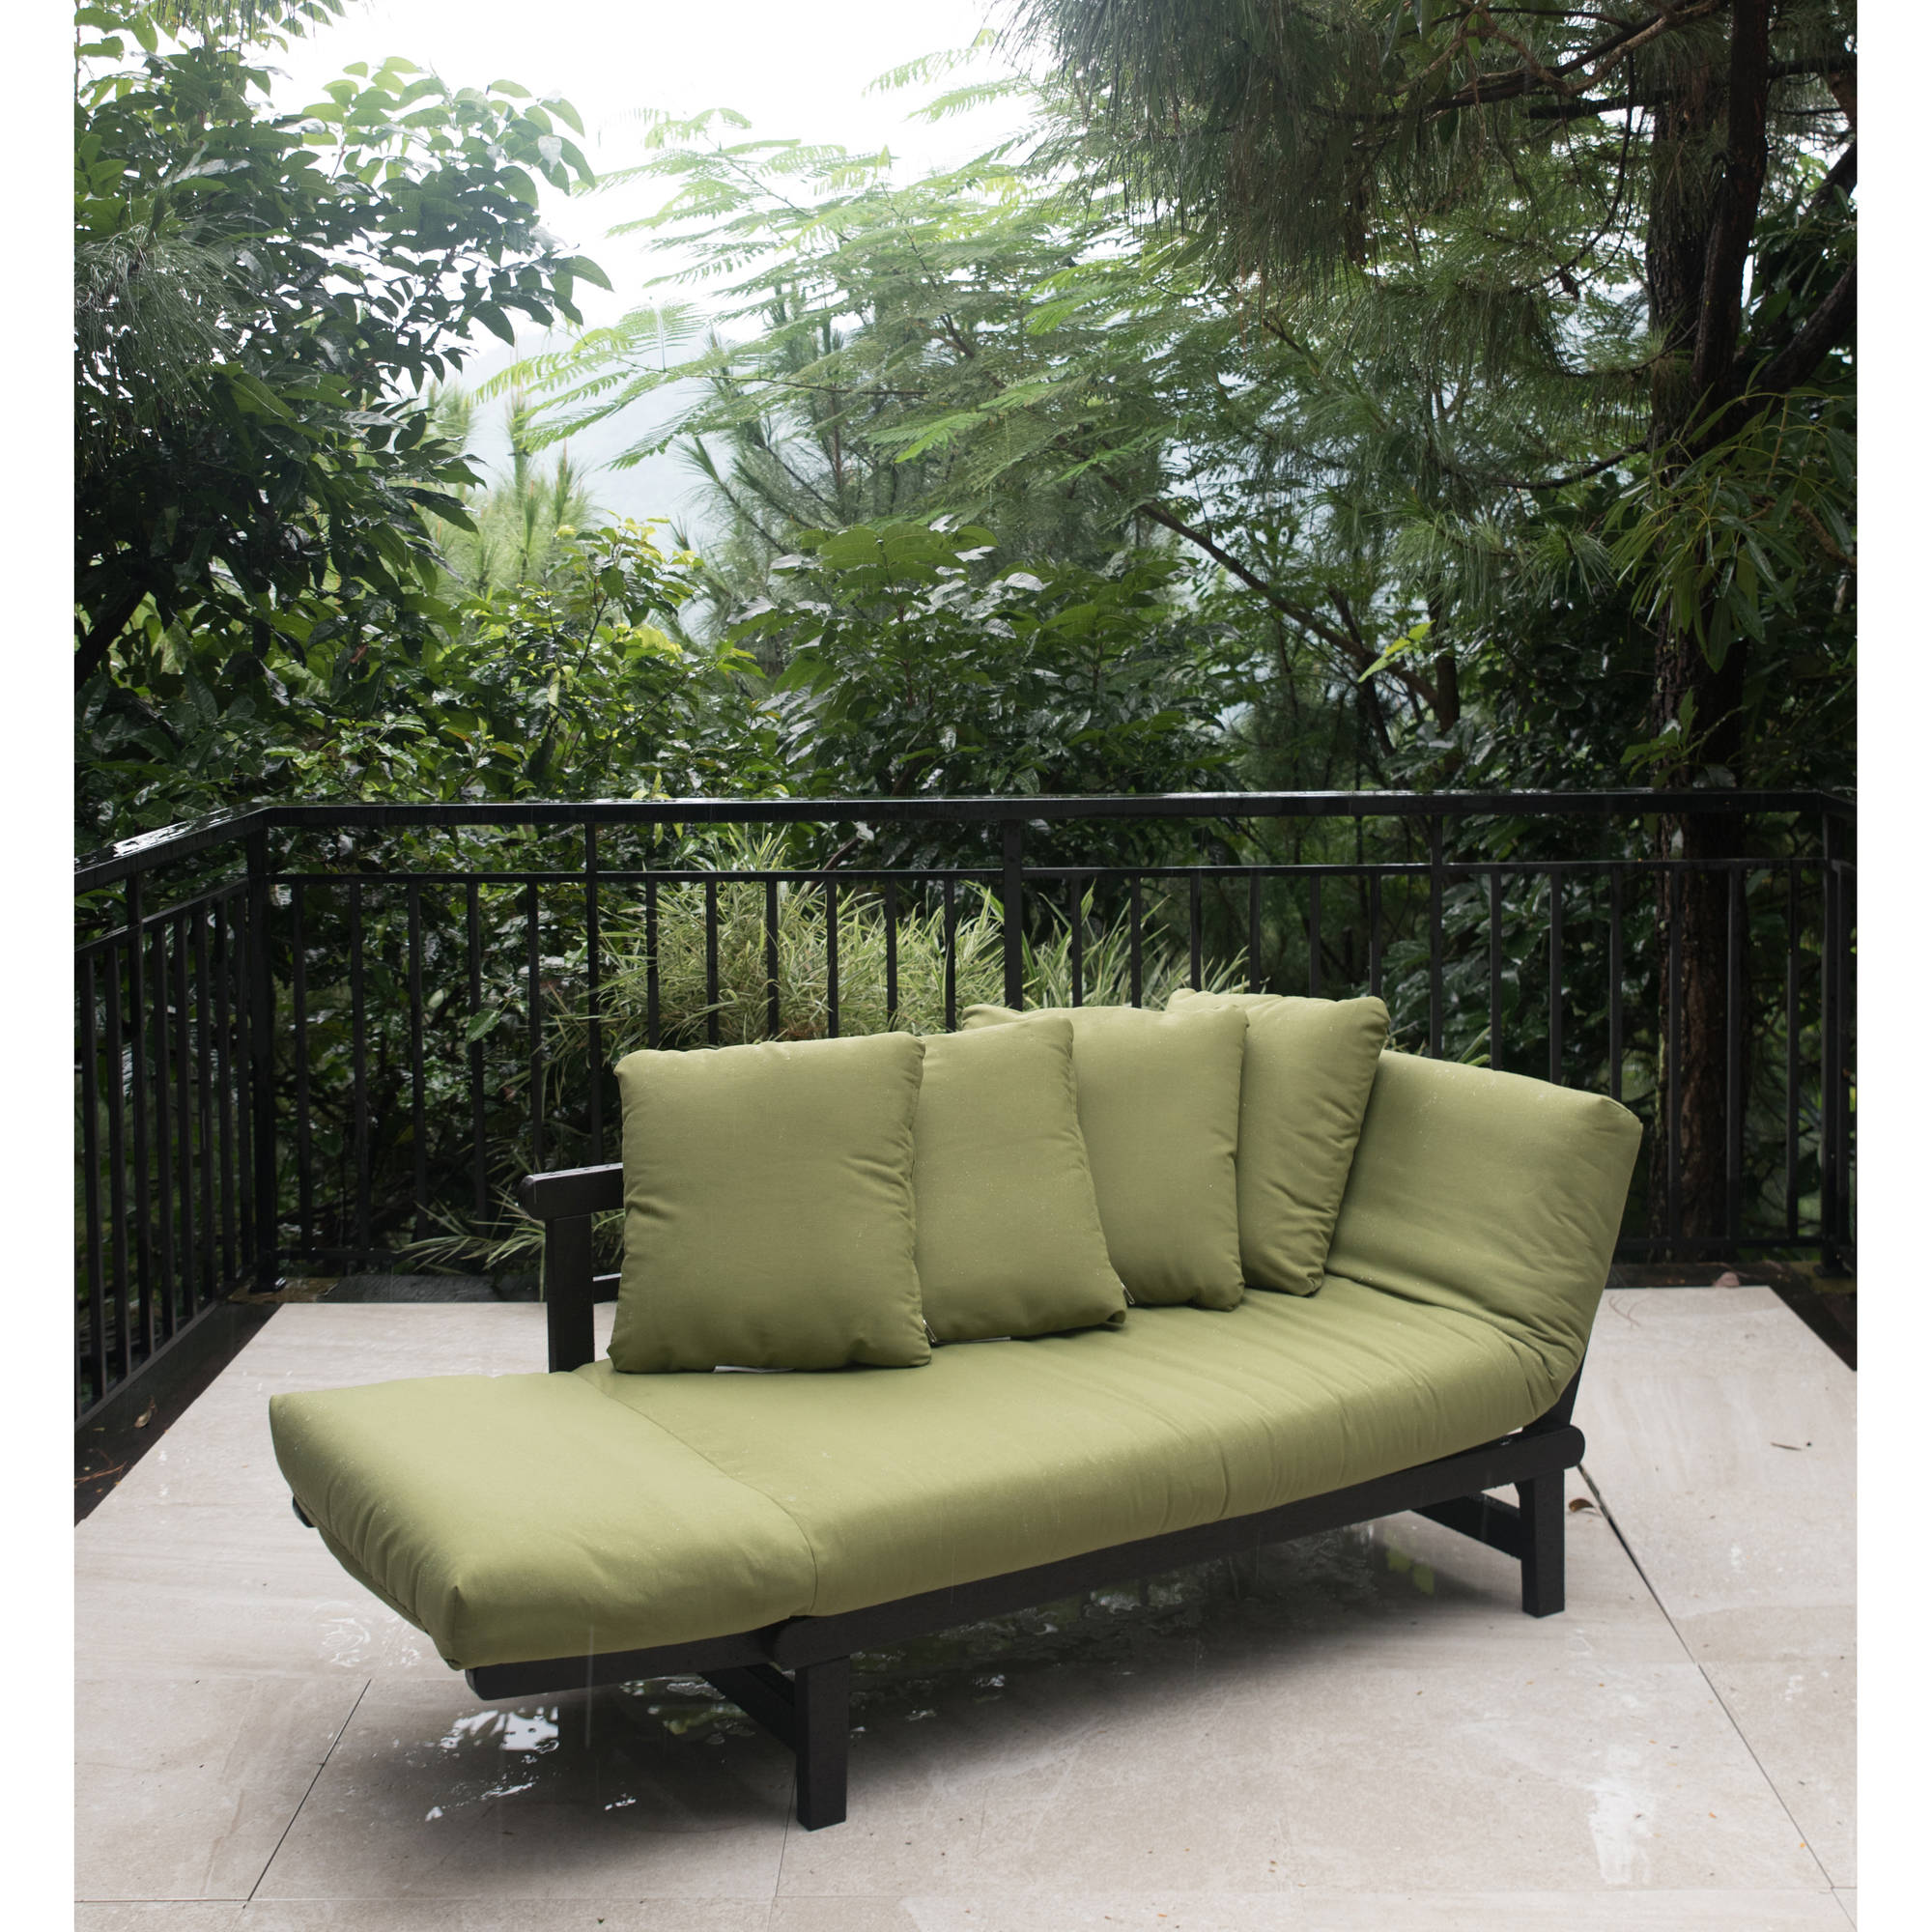 patio garden today set shipping seat sofa bistro cocoa free brown pc outdoor furniture loveseat overstock white rattan cushions wicker creamy love product home with